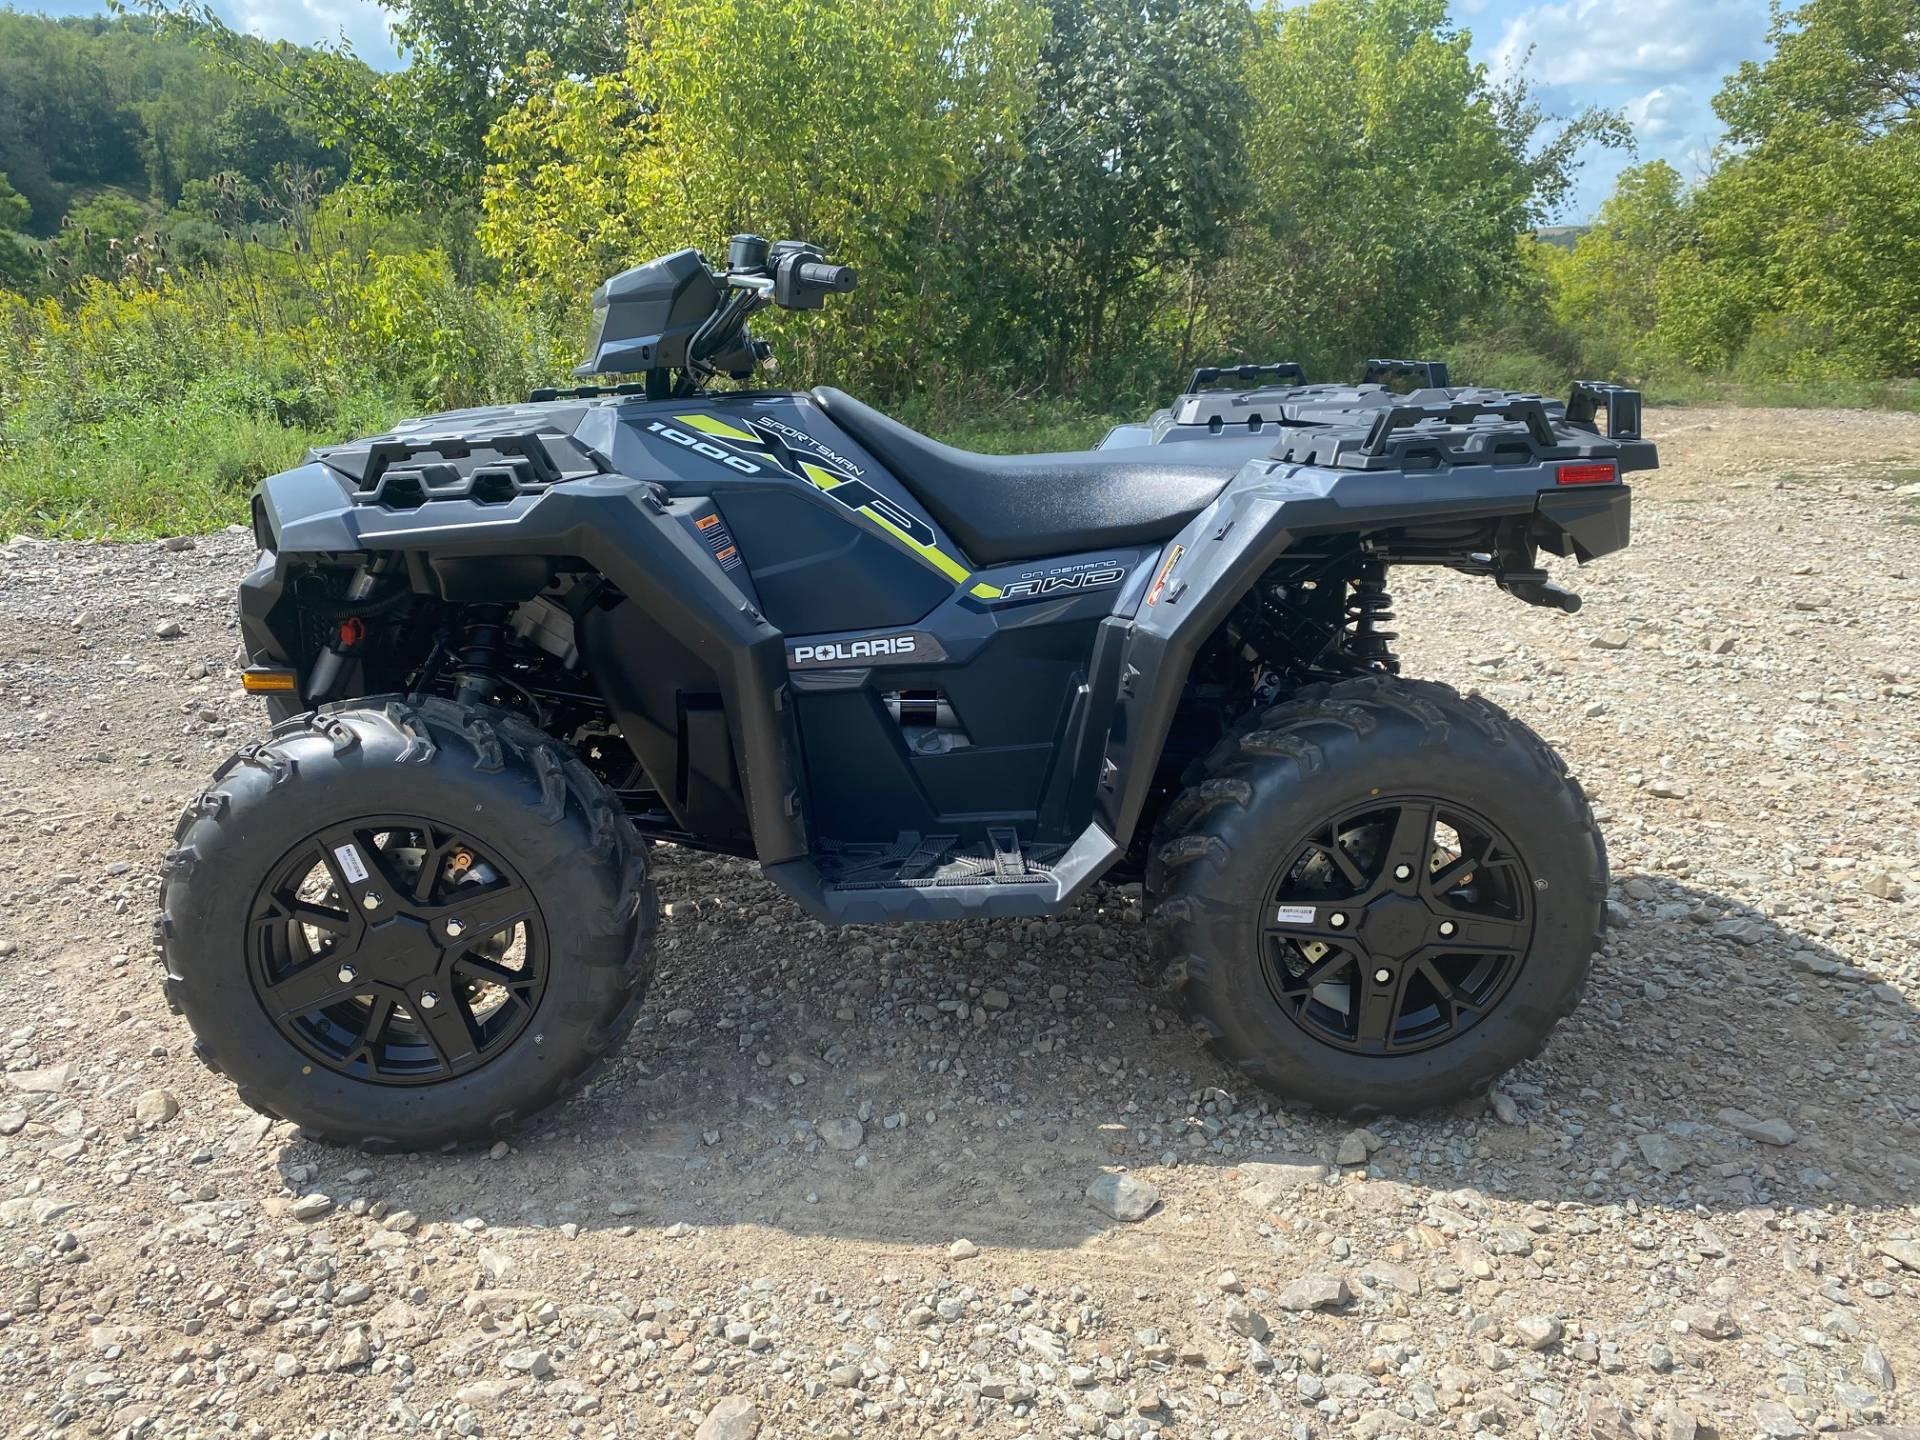 2020 Polaris Sportsman XP 1000 in Claysville, Pennsylvania - Photo 5